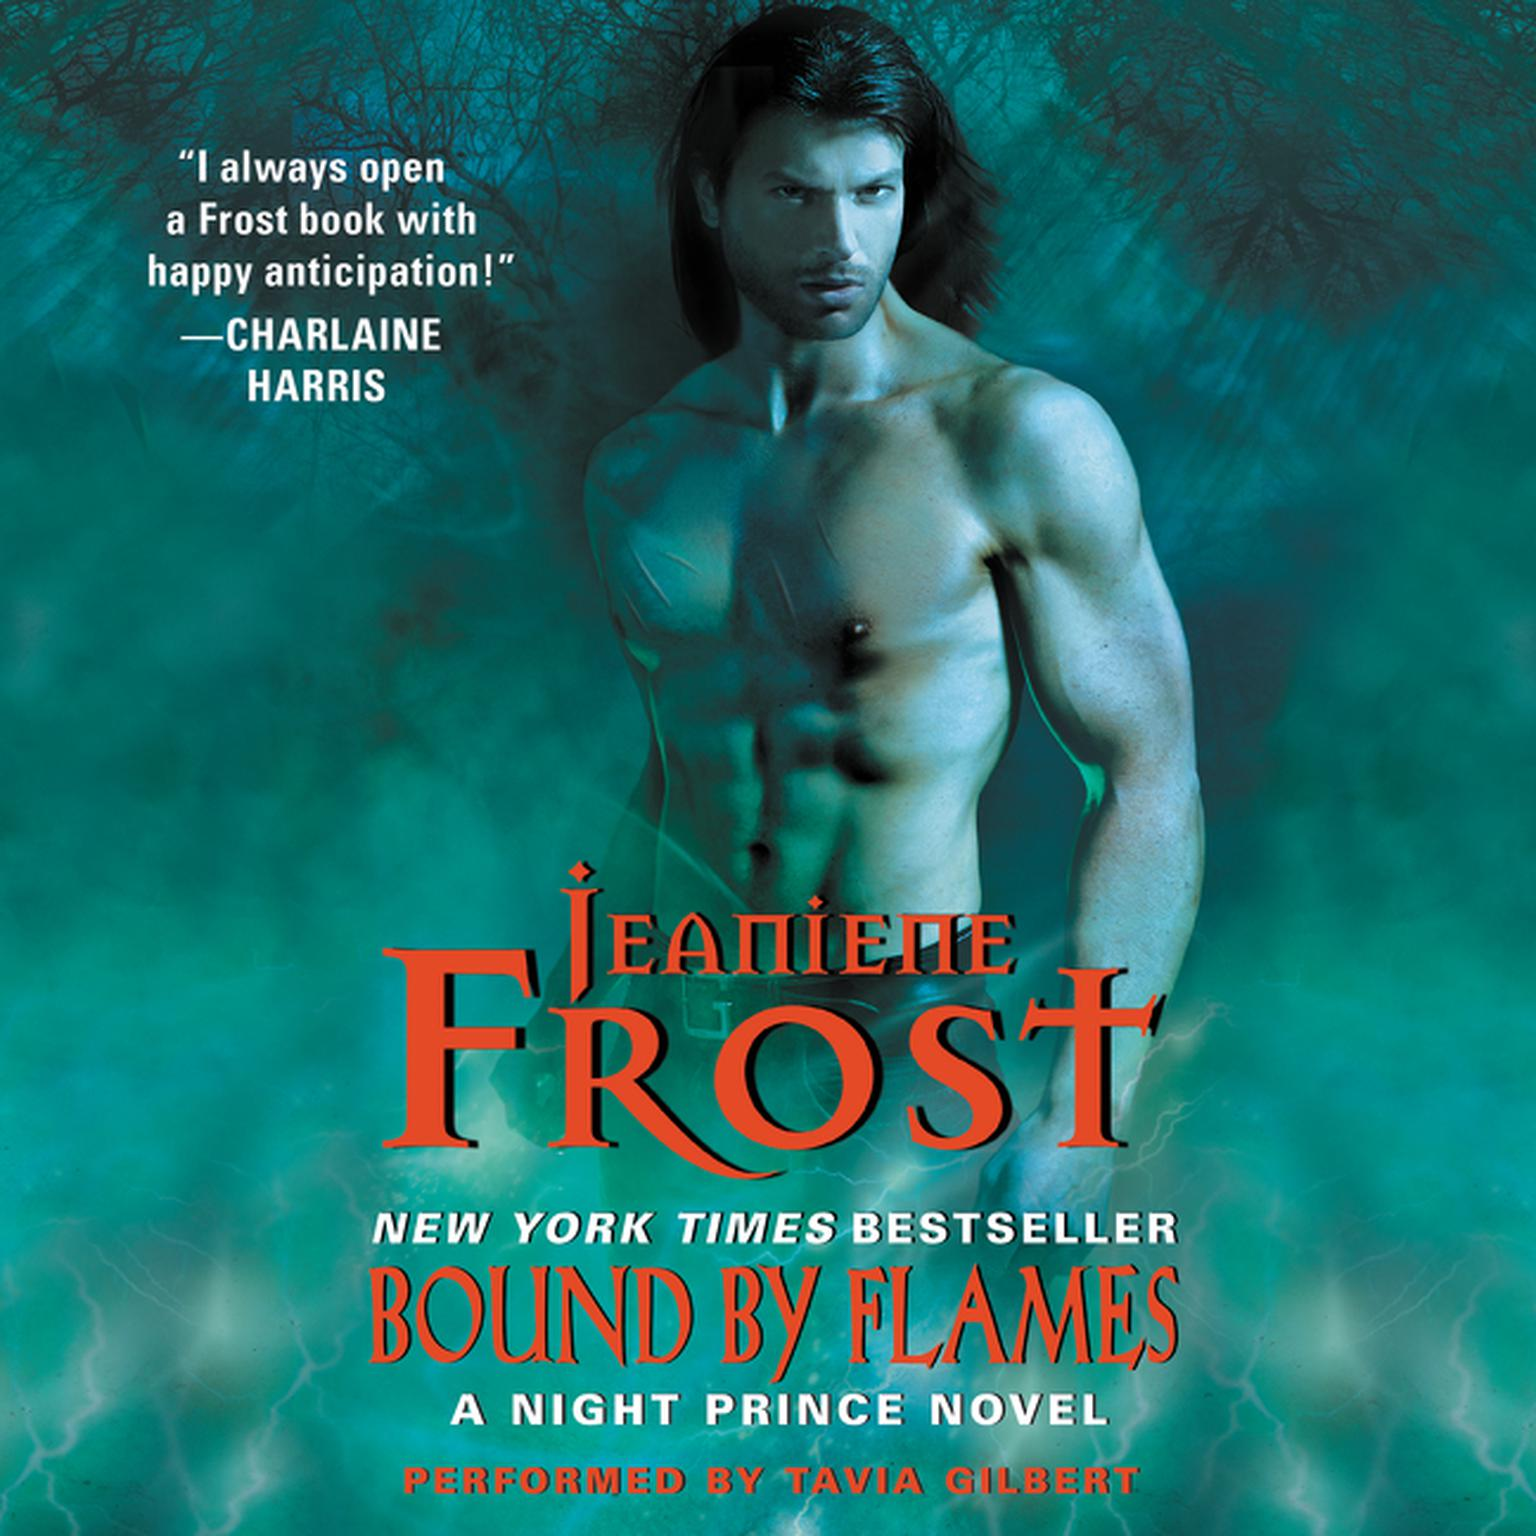 Printable Bound by Flames: A Night Prince Novel Audiobook Cover Art